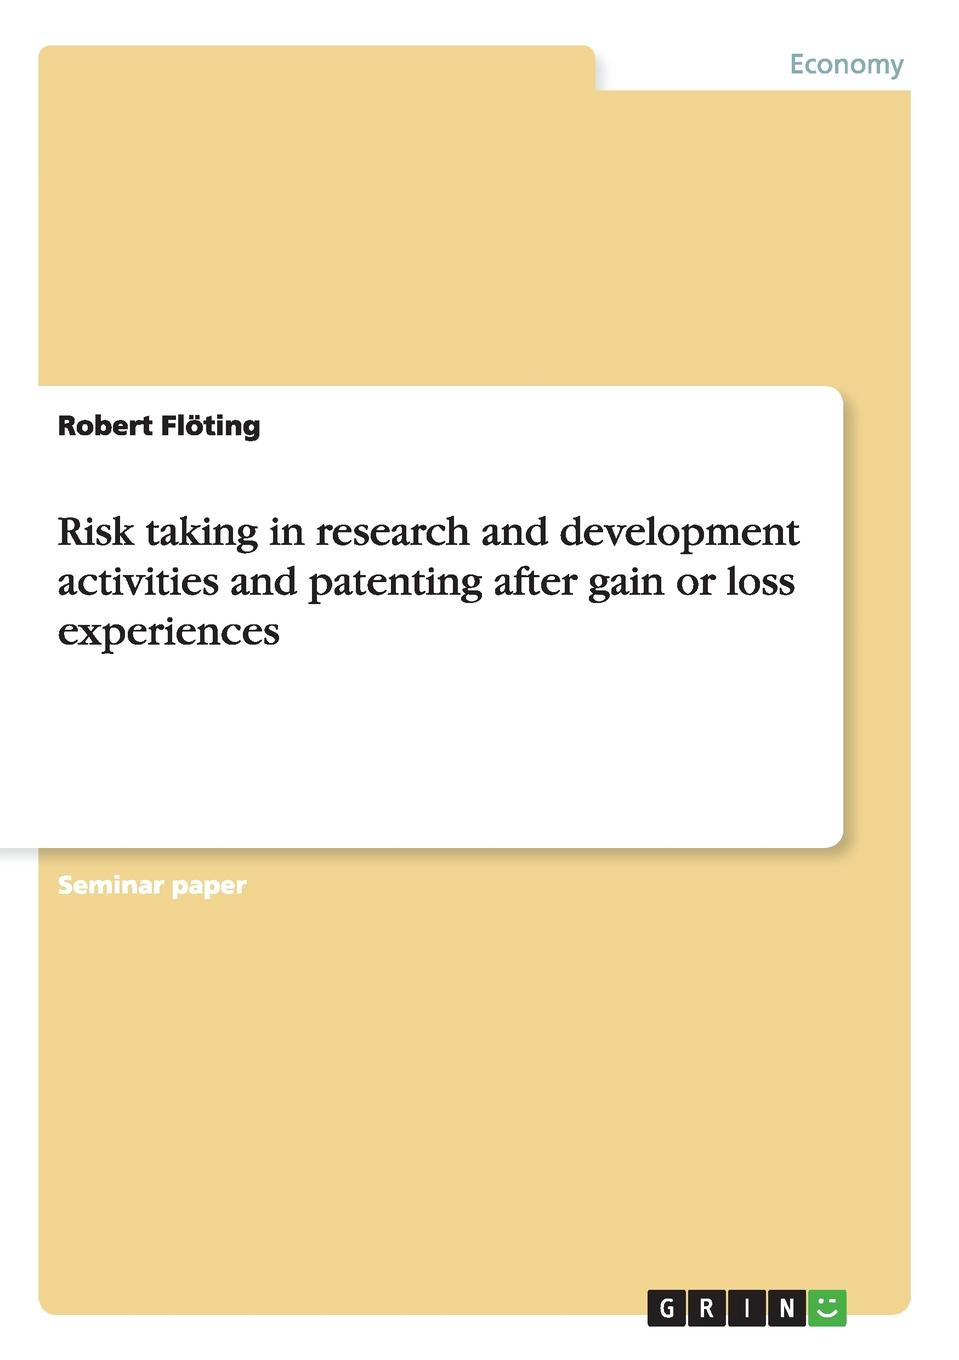 Robert Flöting Risk taking in research and development activities and patenting after gain or loss experiences